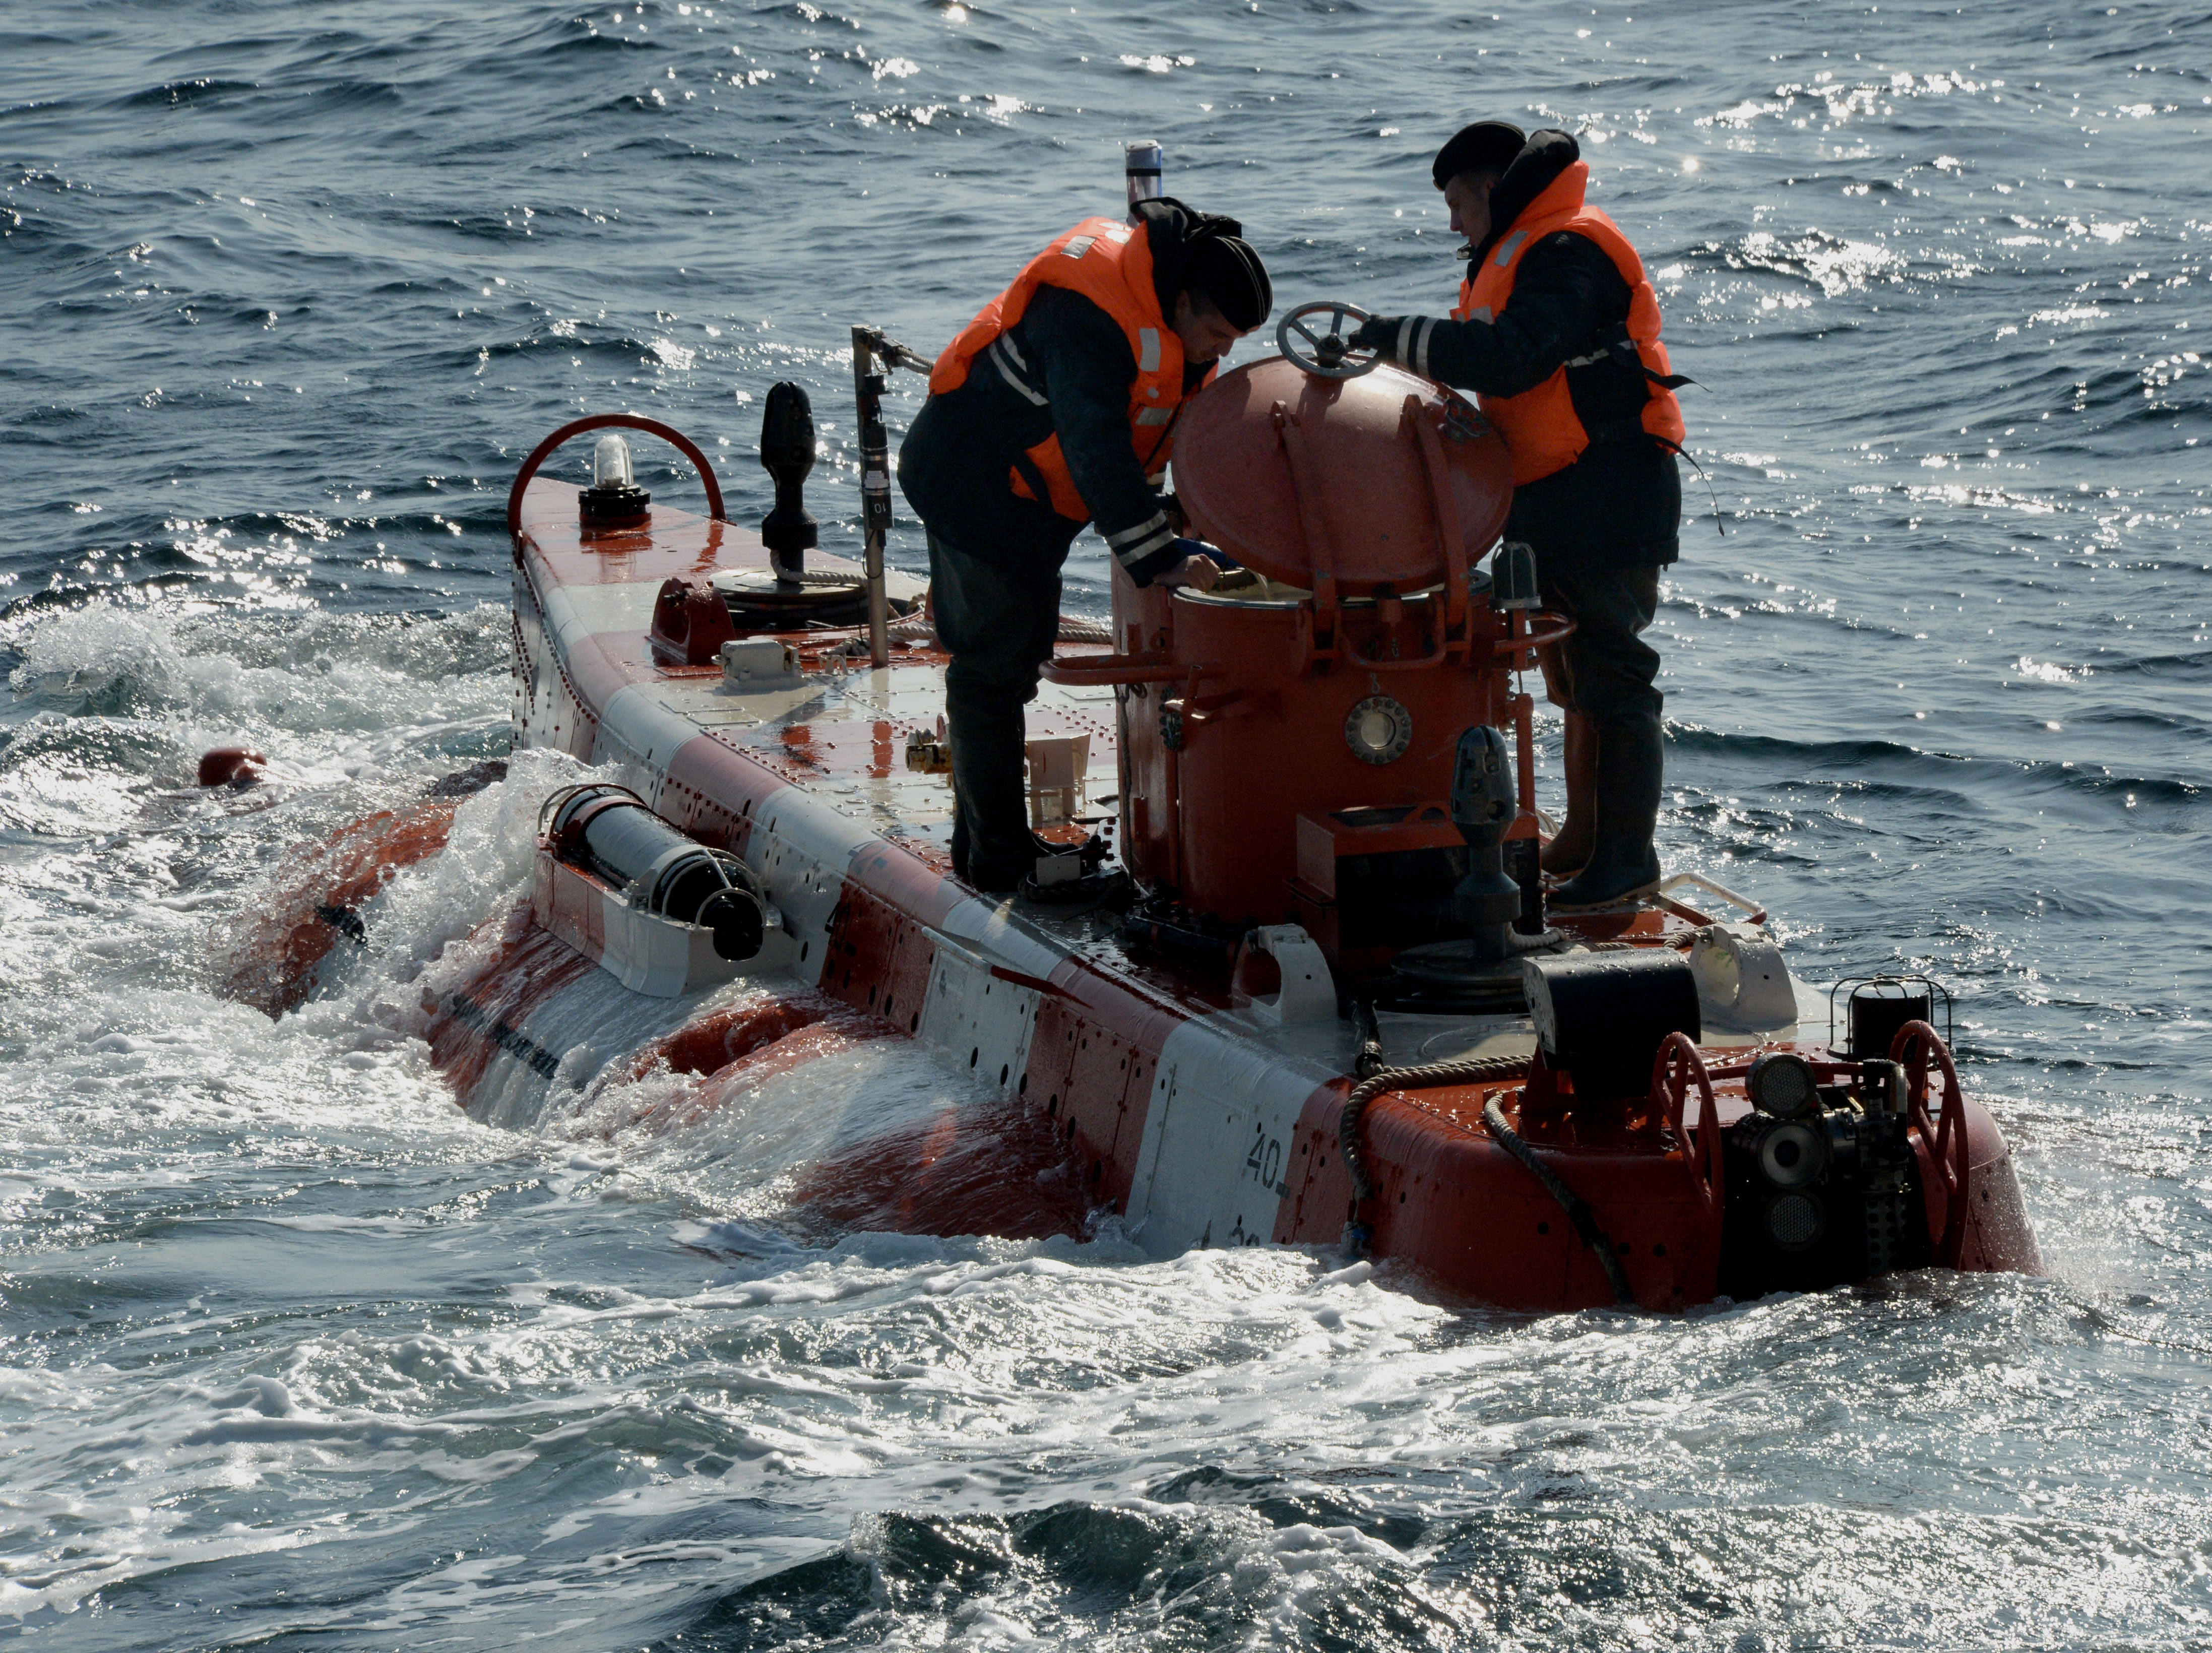 Bester-1 deep submergence vehicle during a submarine crew rescue drill by the sea rescue service of the Pacific Fleet in the Peter the Great Gulf.